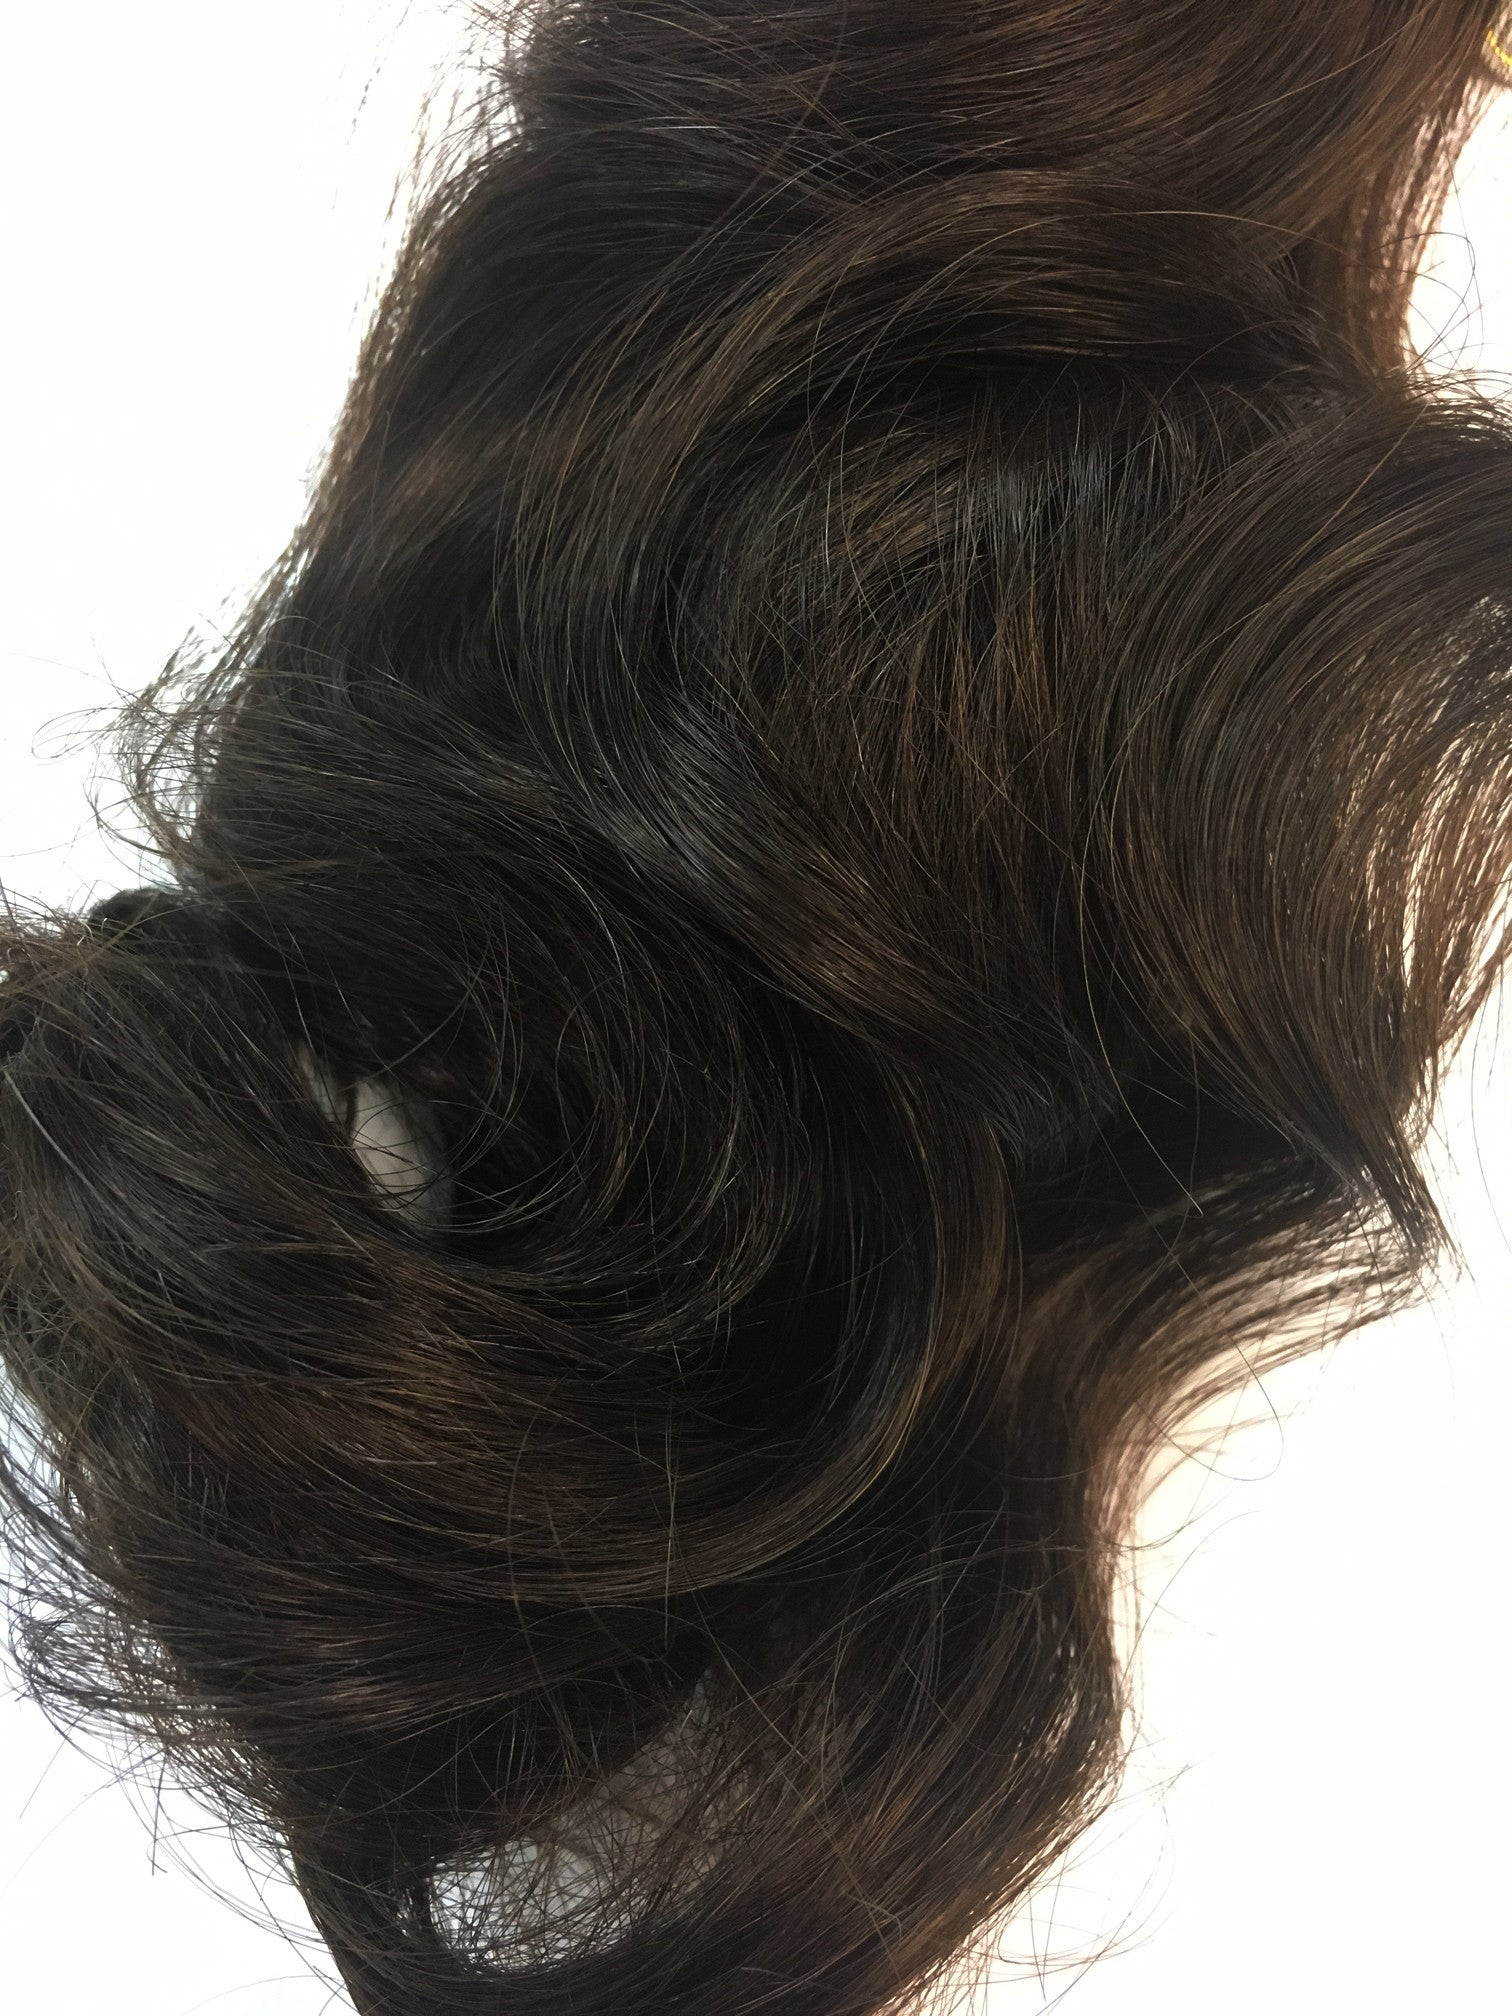 Indian Remy Bodywave Human Hair Extensions Wefted Hair 22